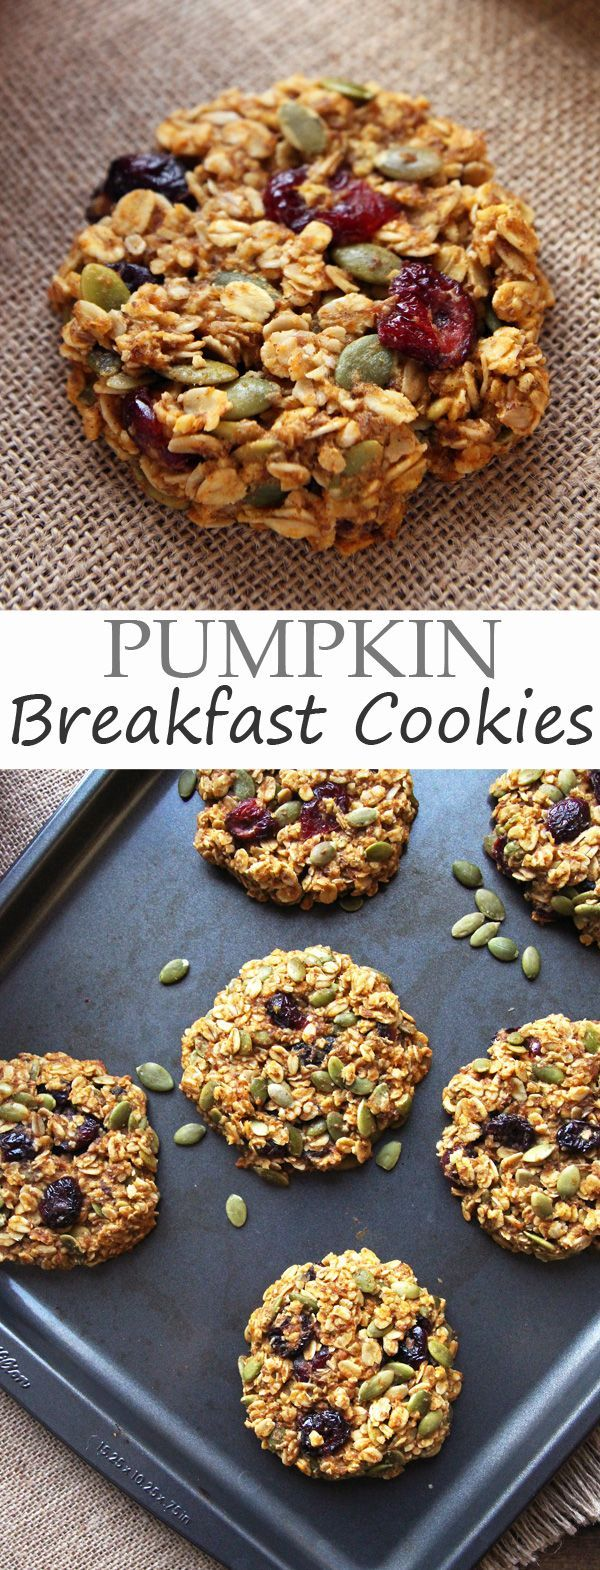 Pumpkin Breakfast Cookies for a healthy, delicious breakfast on-the-go.